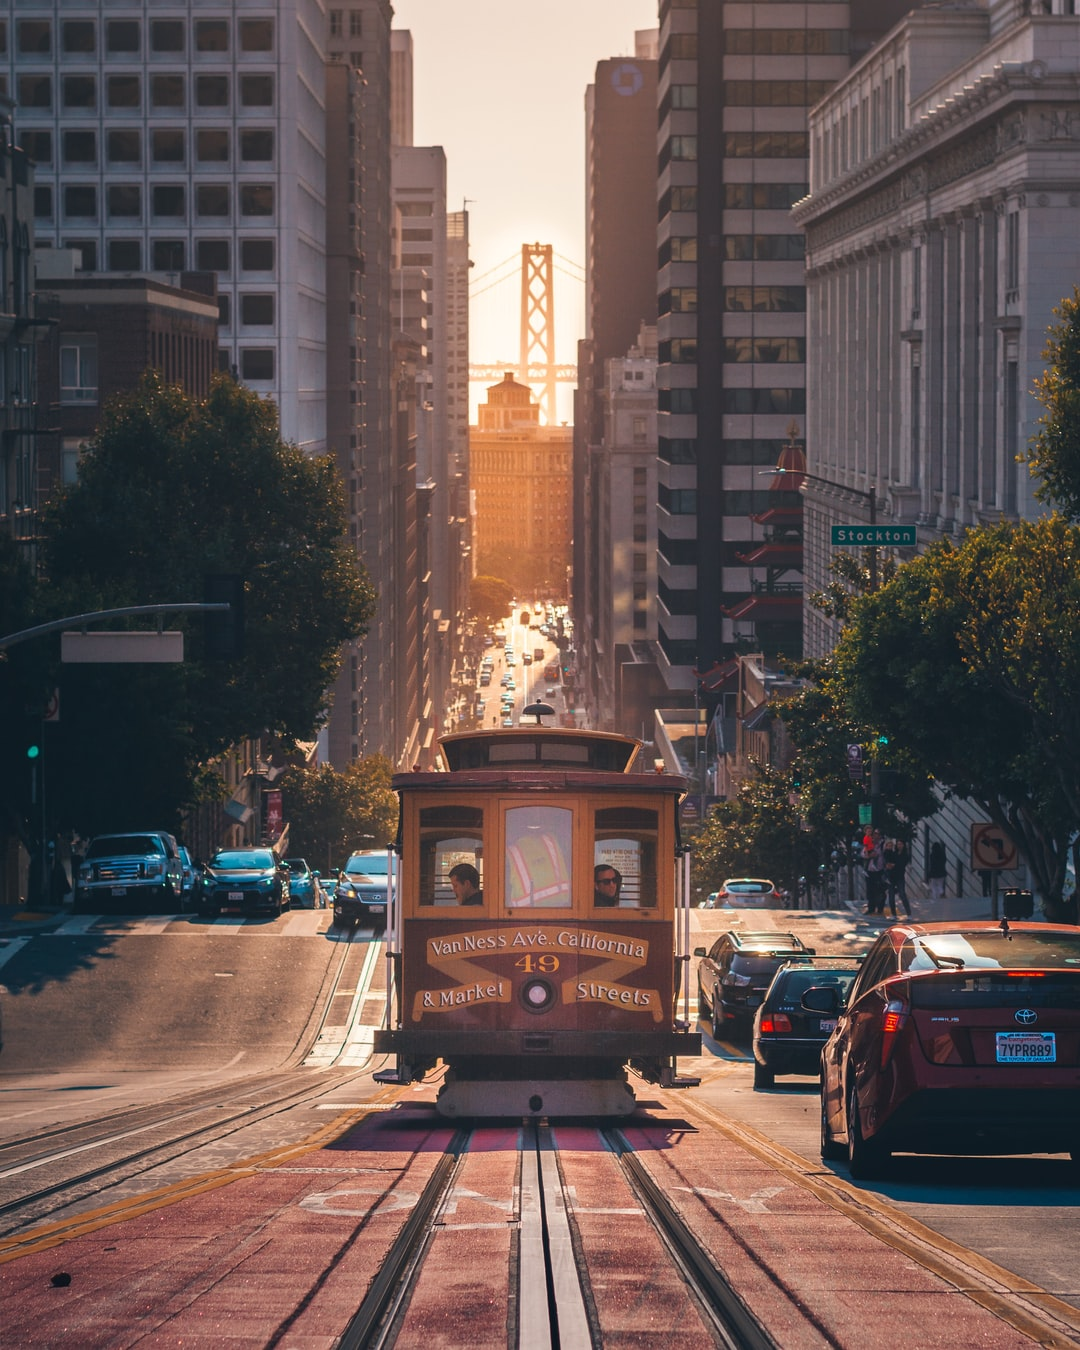 100+ San Francisco Pictures [Stunning]